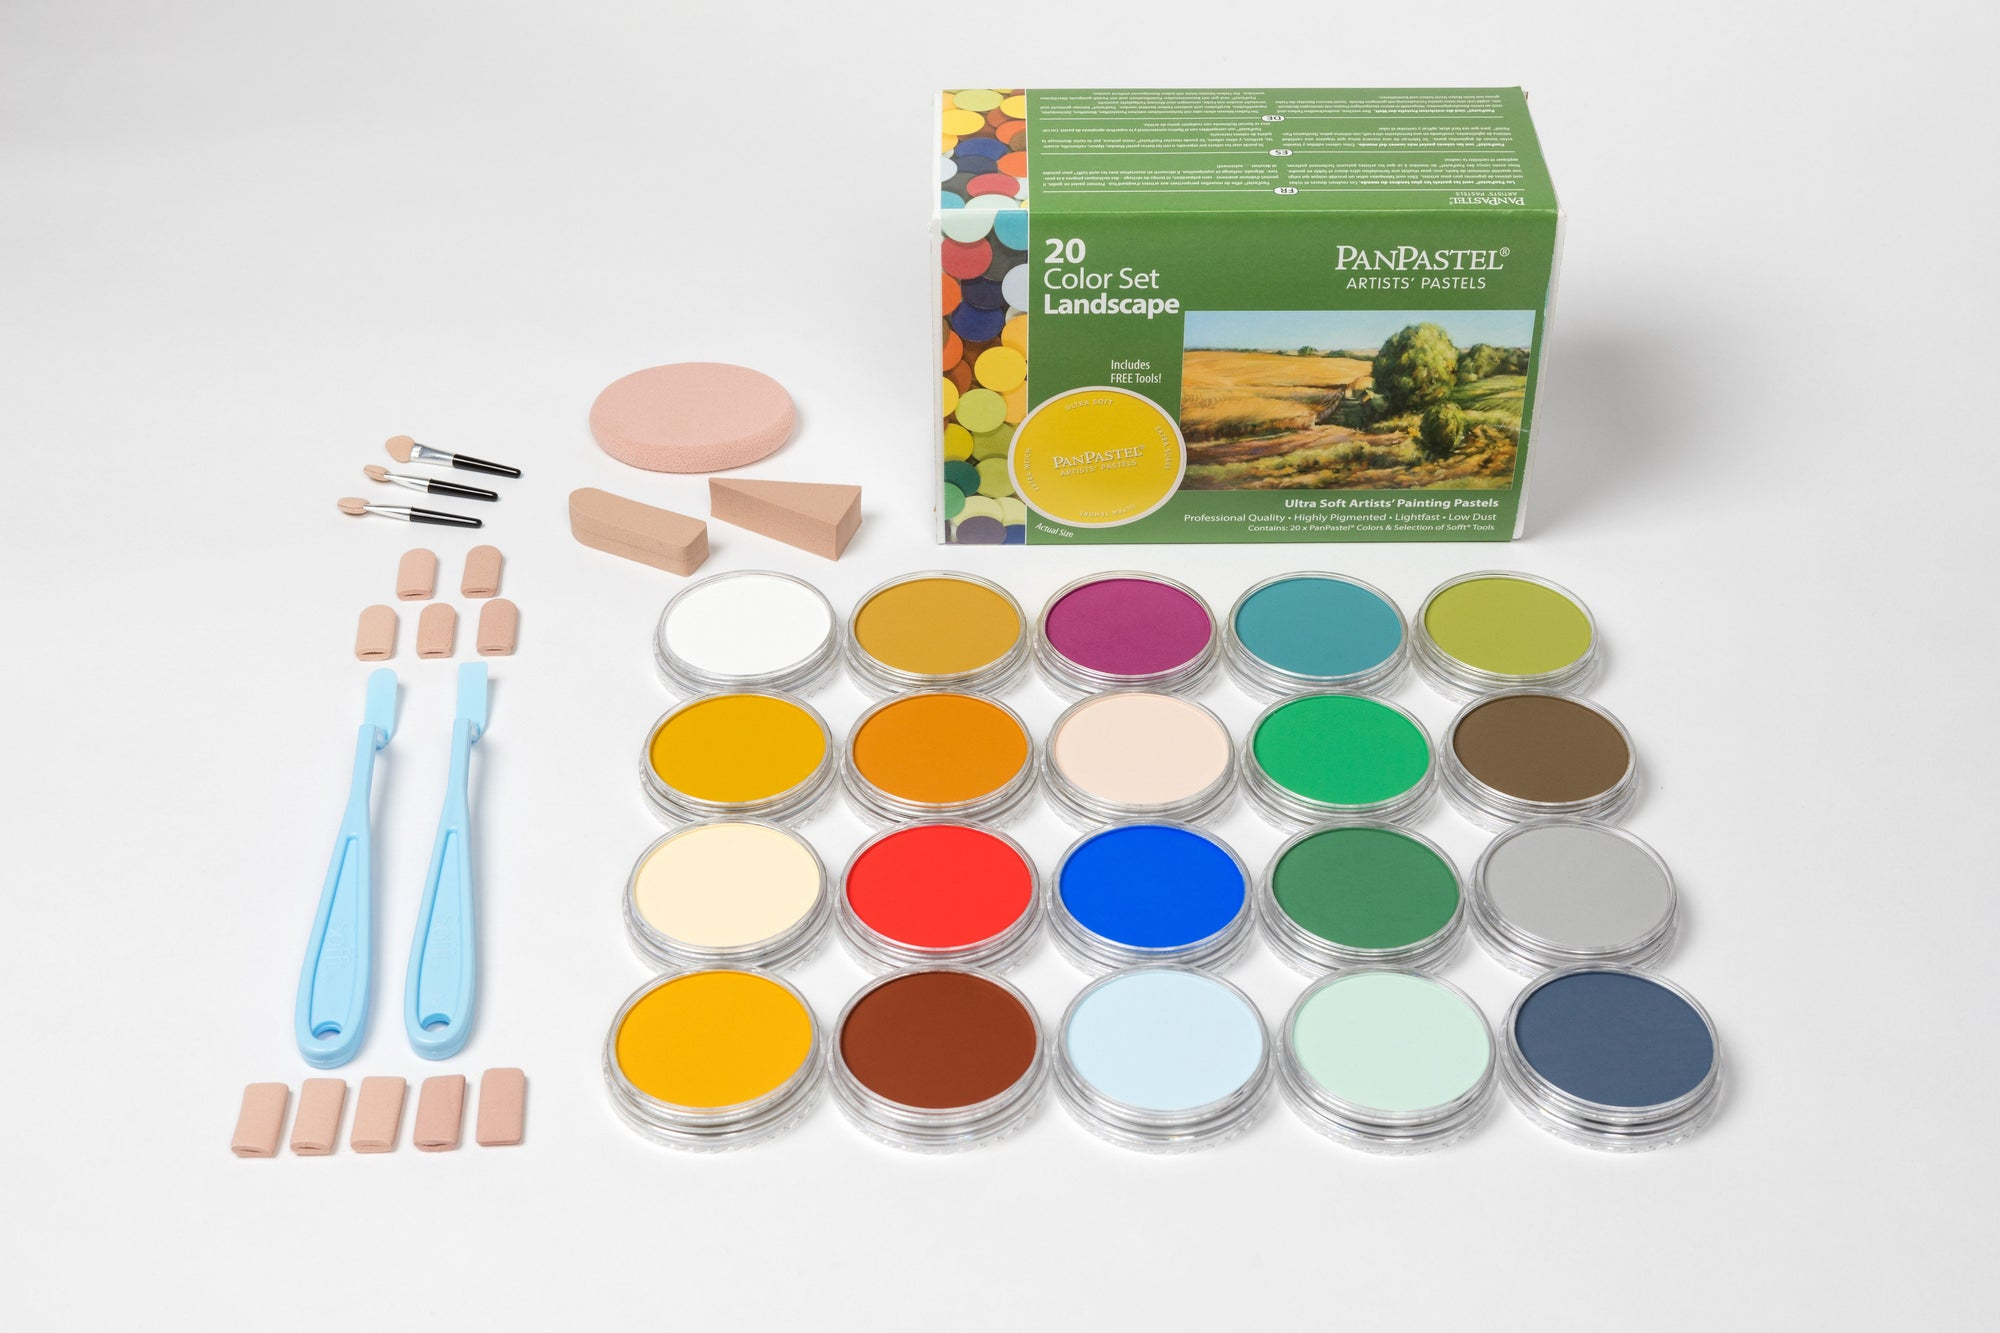 PanPastel - 30202 20 COLOUR LANDSCAPE SET